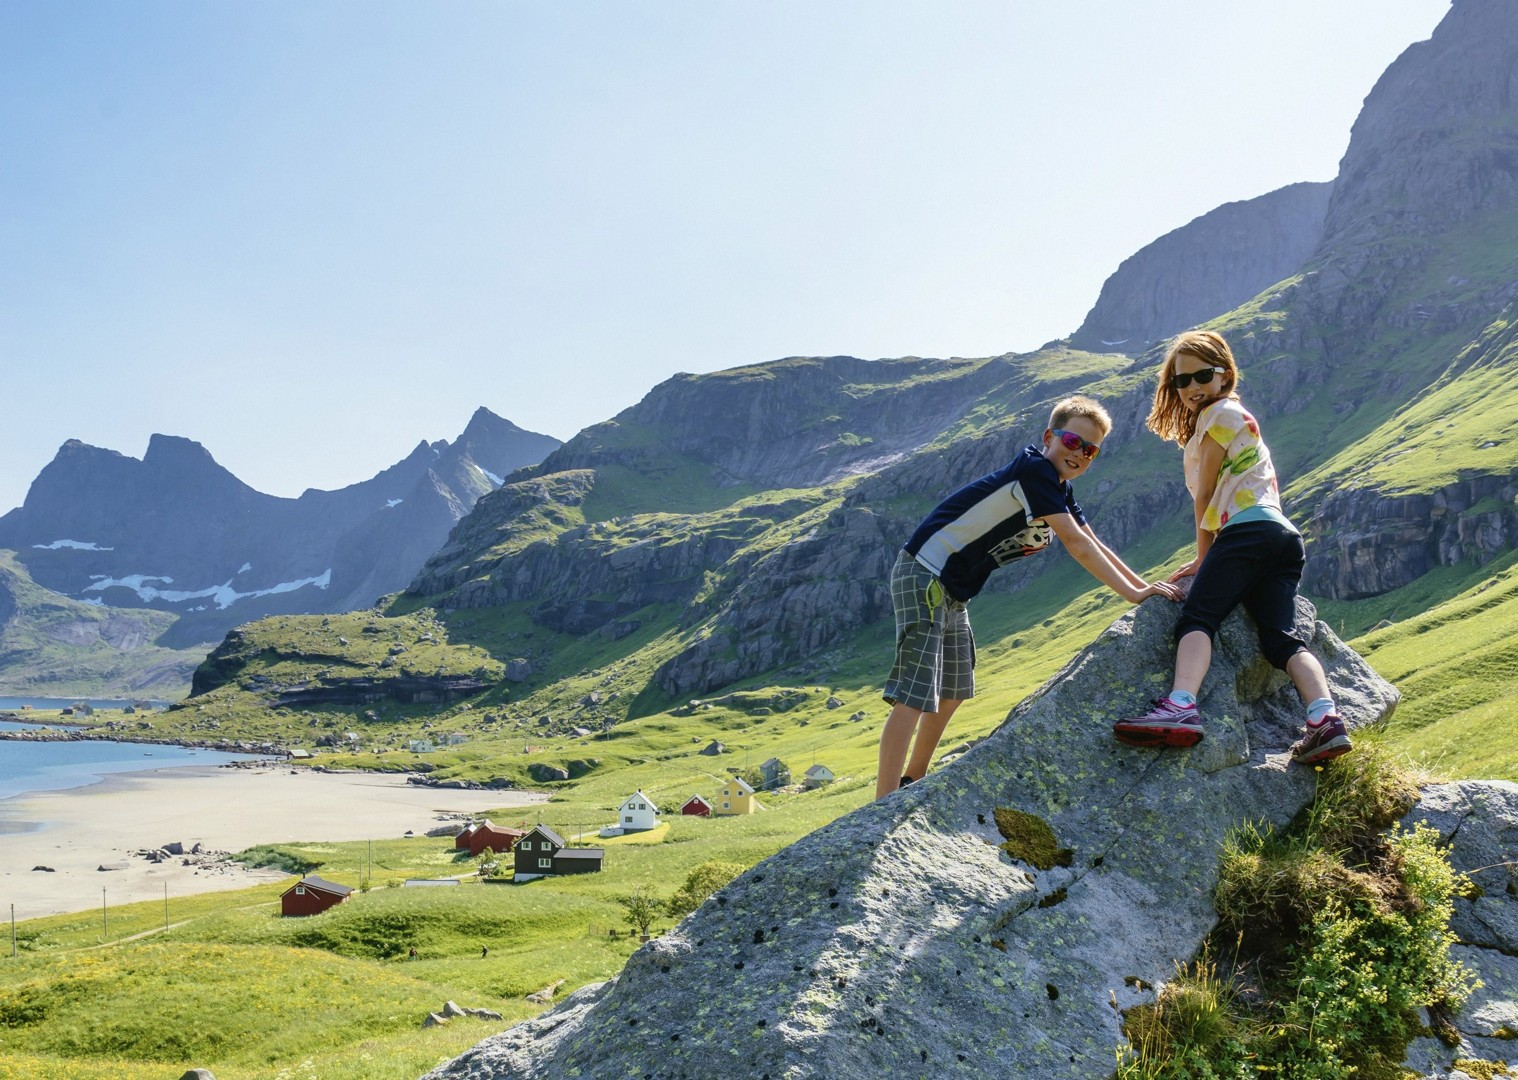 lofoten-islands-norway1.jpg - Norway - Lofoten Islands - Biking with Vikings - Self-Guided Family Cycling Holiday - Family Cycling